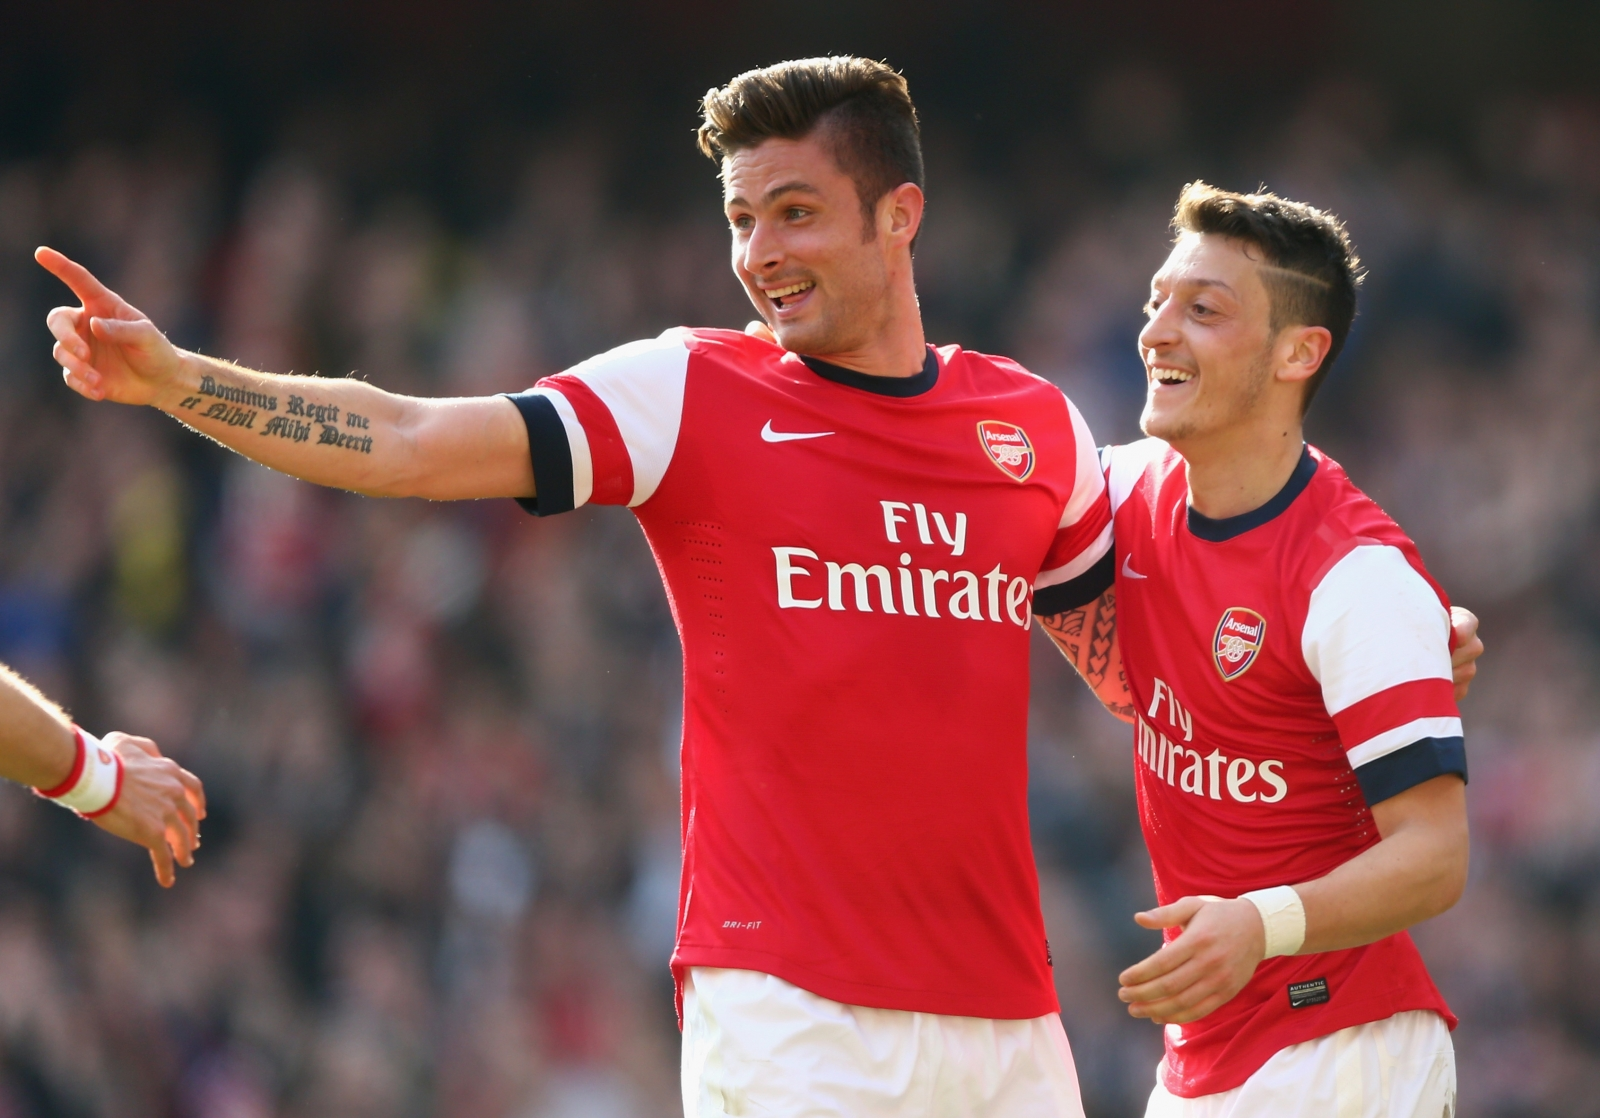 Arsene Wenger insists he wants to keep Giroud and Ozil at Arsenal